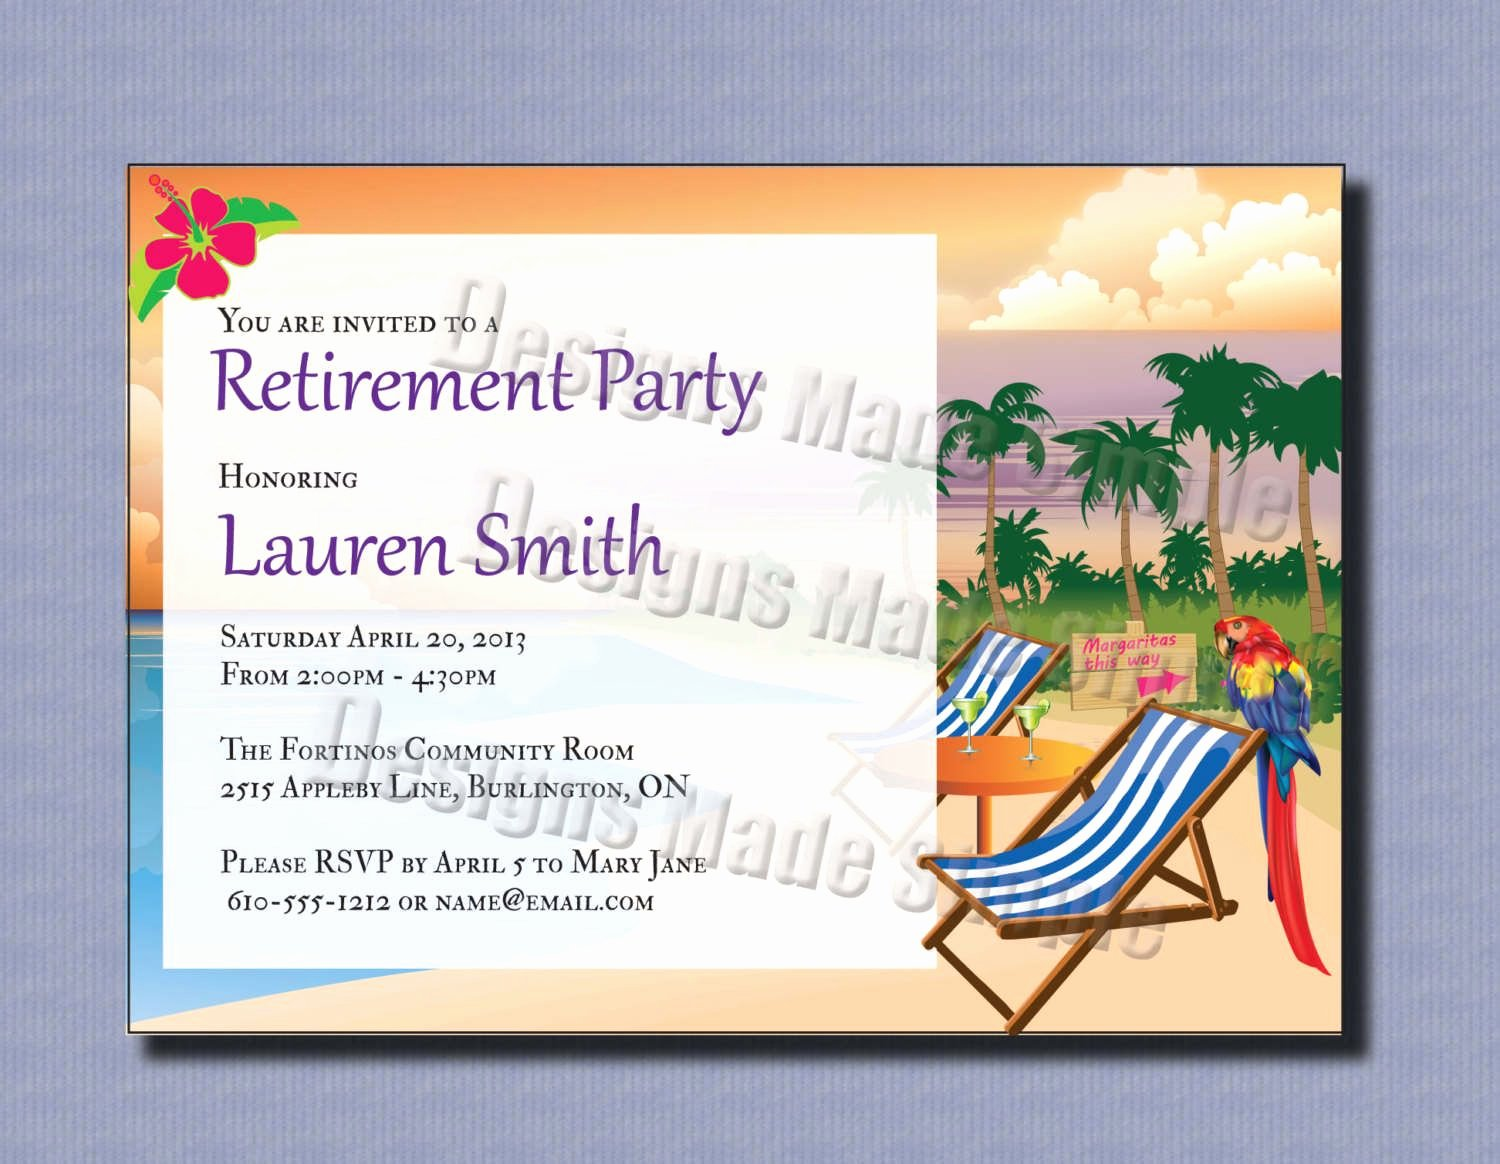 Retirement Party Invitations Templates Awesome Free Printable Retirement Party Invitations Templates